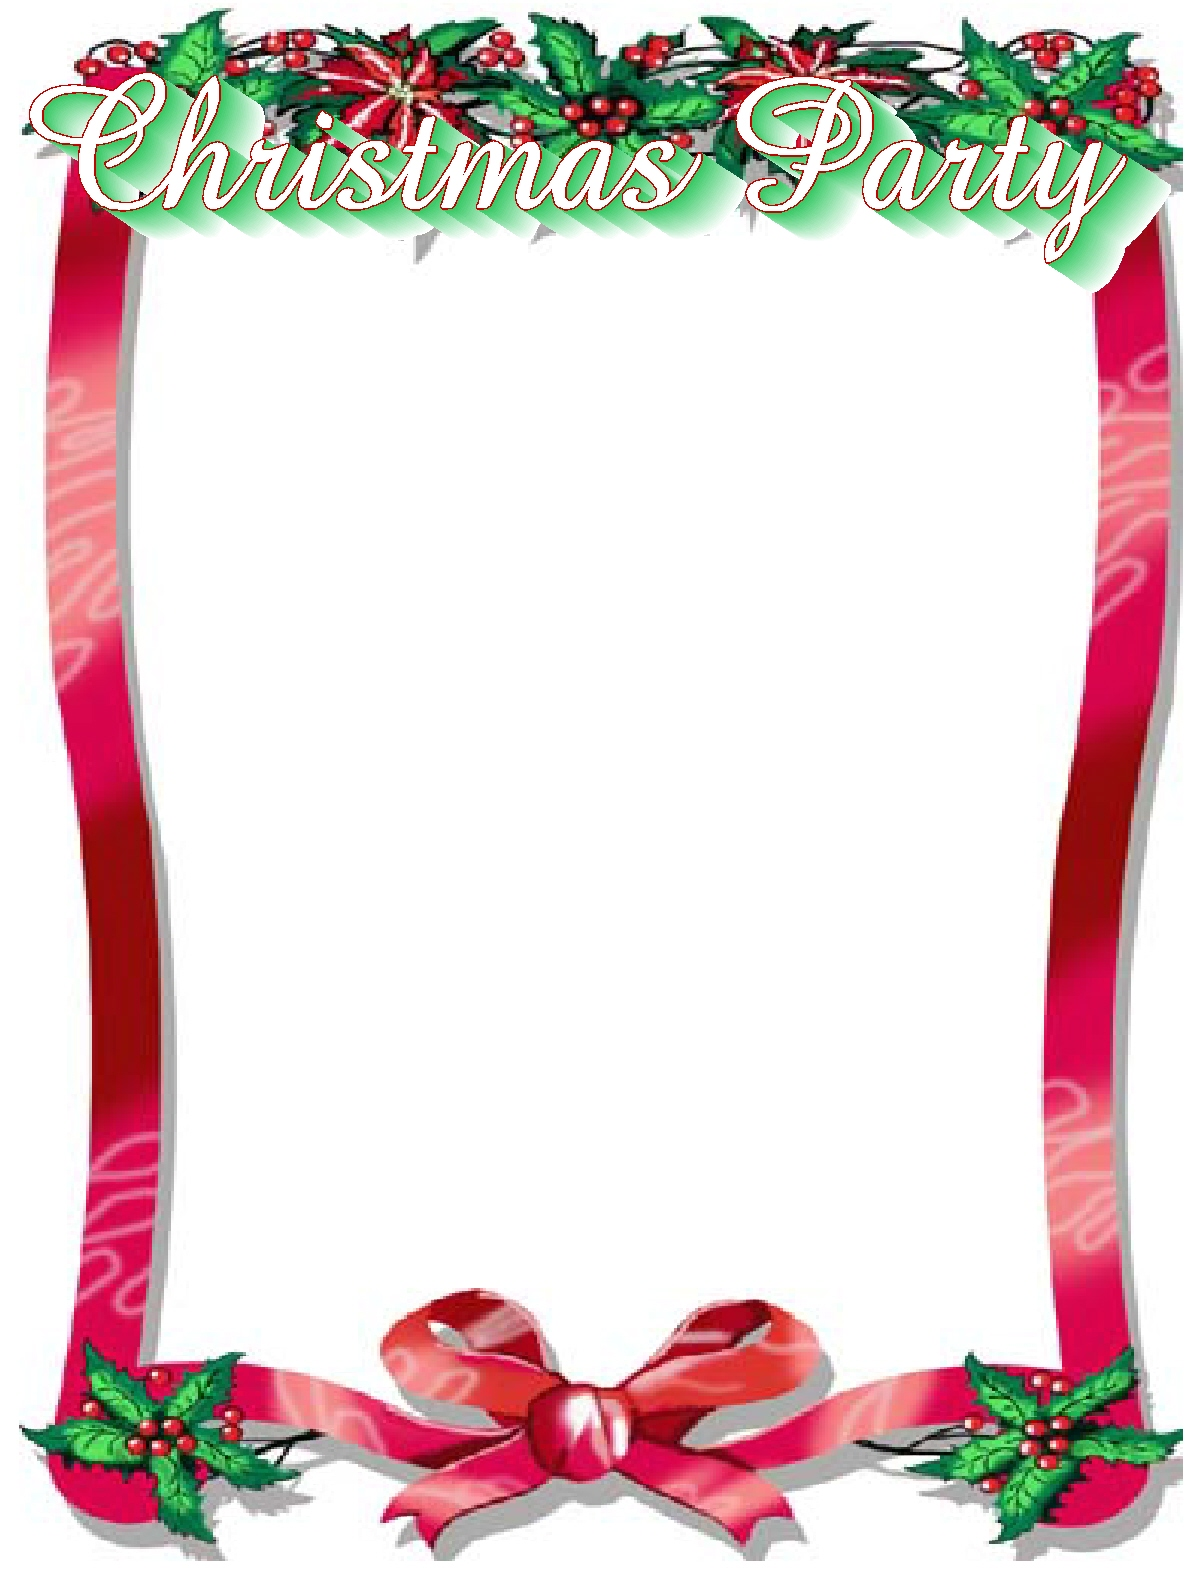 Free christmas clipart for flyers png Party Border Clipart | Free download best Party Border Clipart on ... png